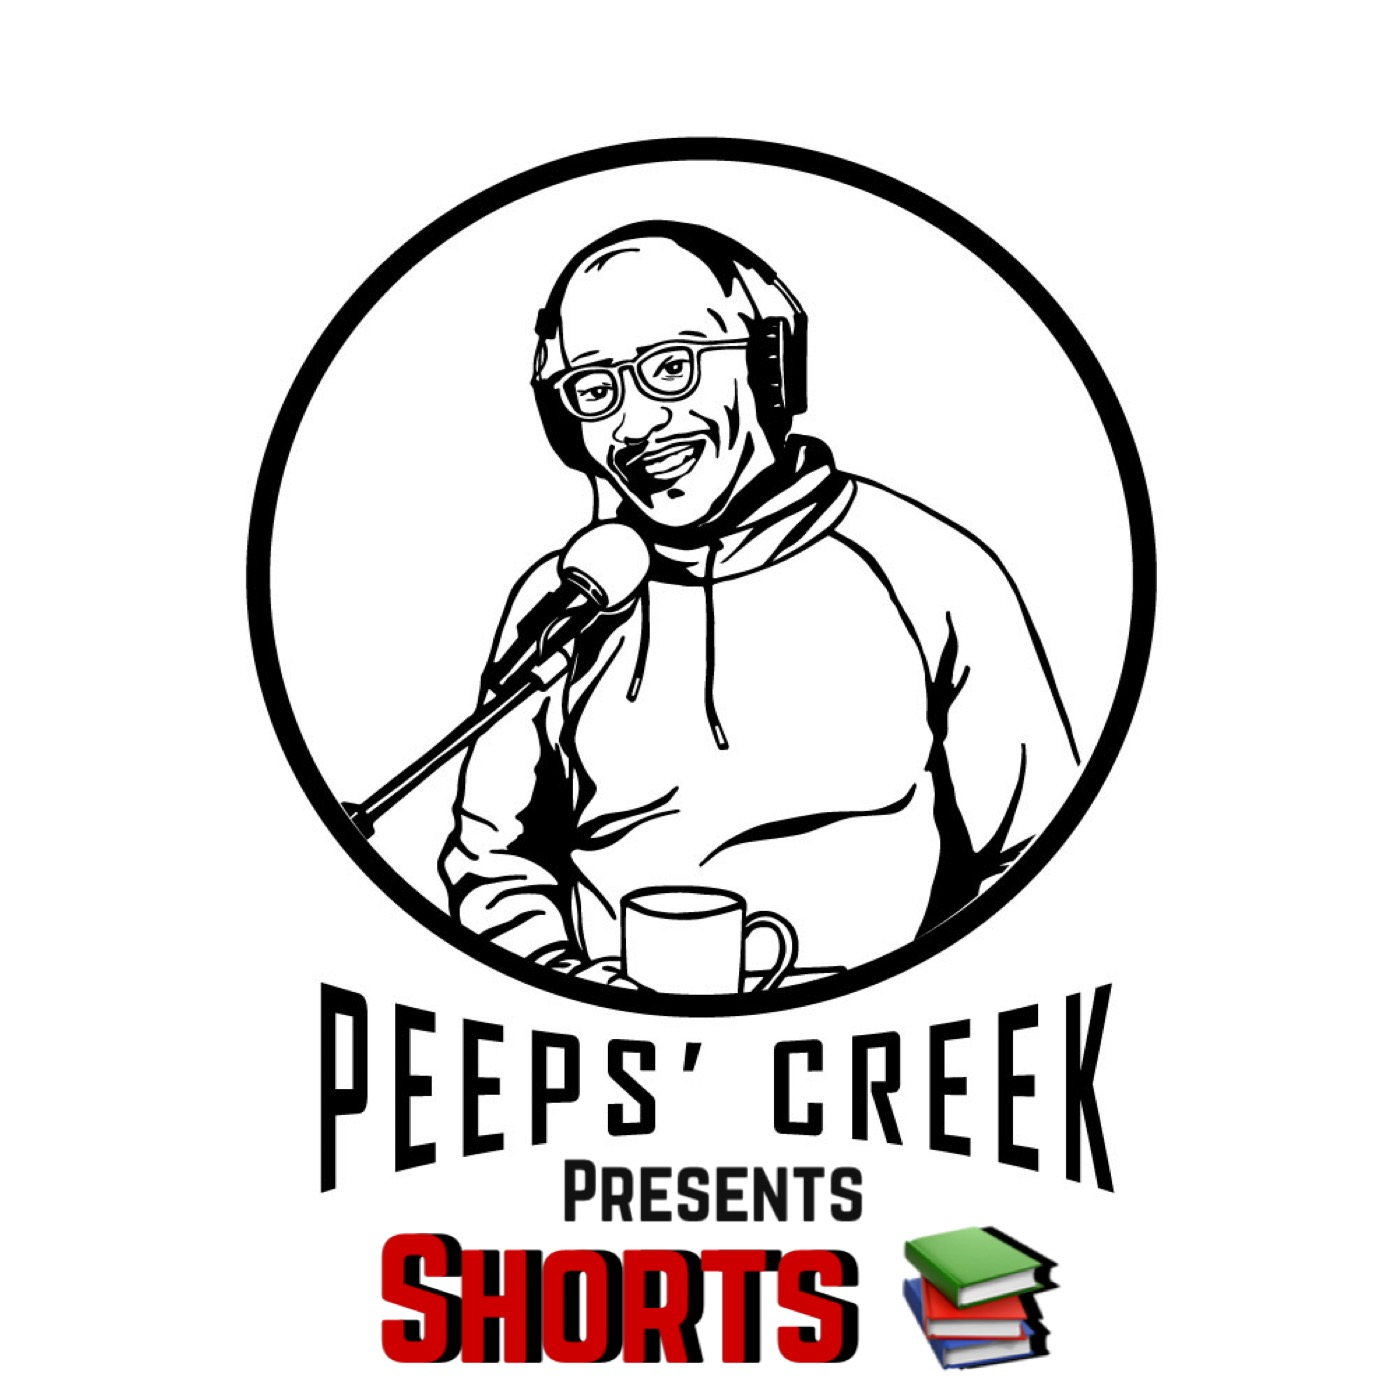 Peeps' Creek Presents: Shorts